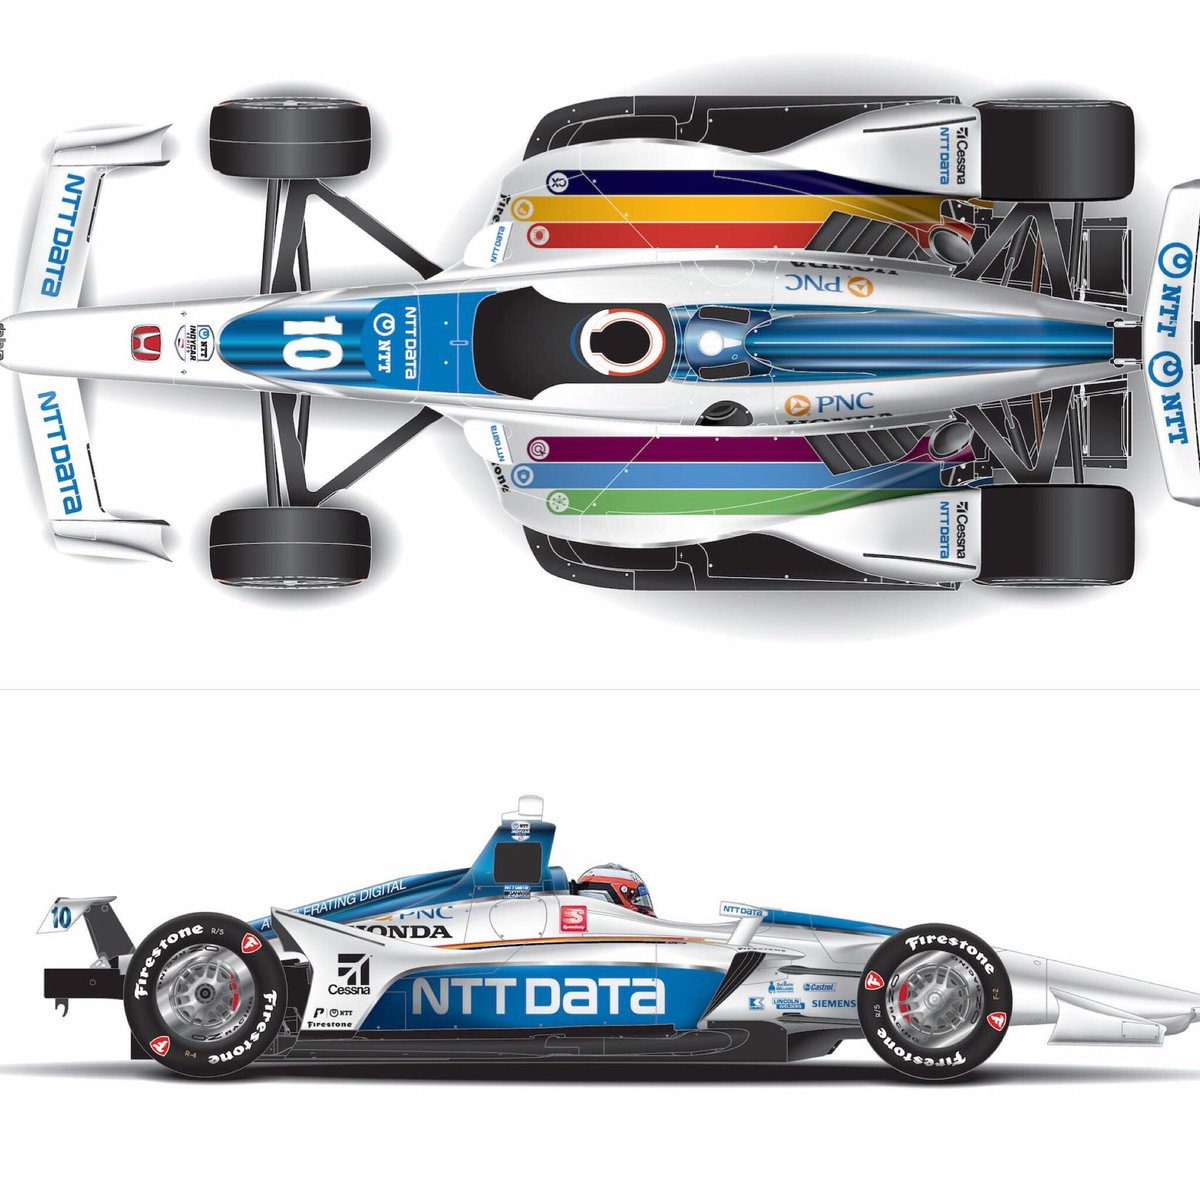 What do you think of @FRosenqvist's #Indy500 livery? #MustBeMay #ThisIsMay